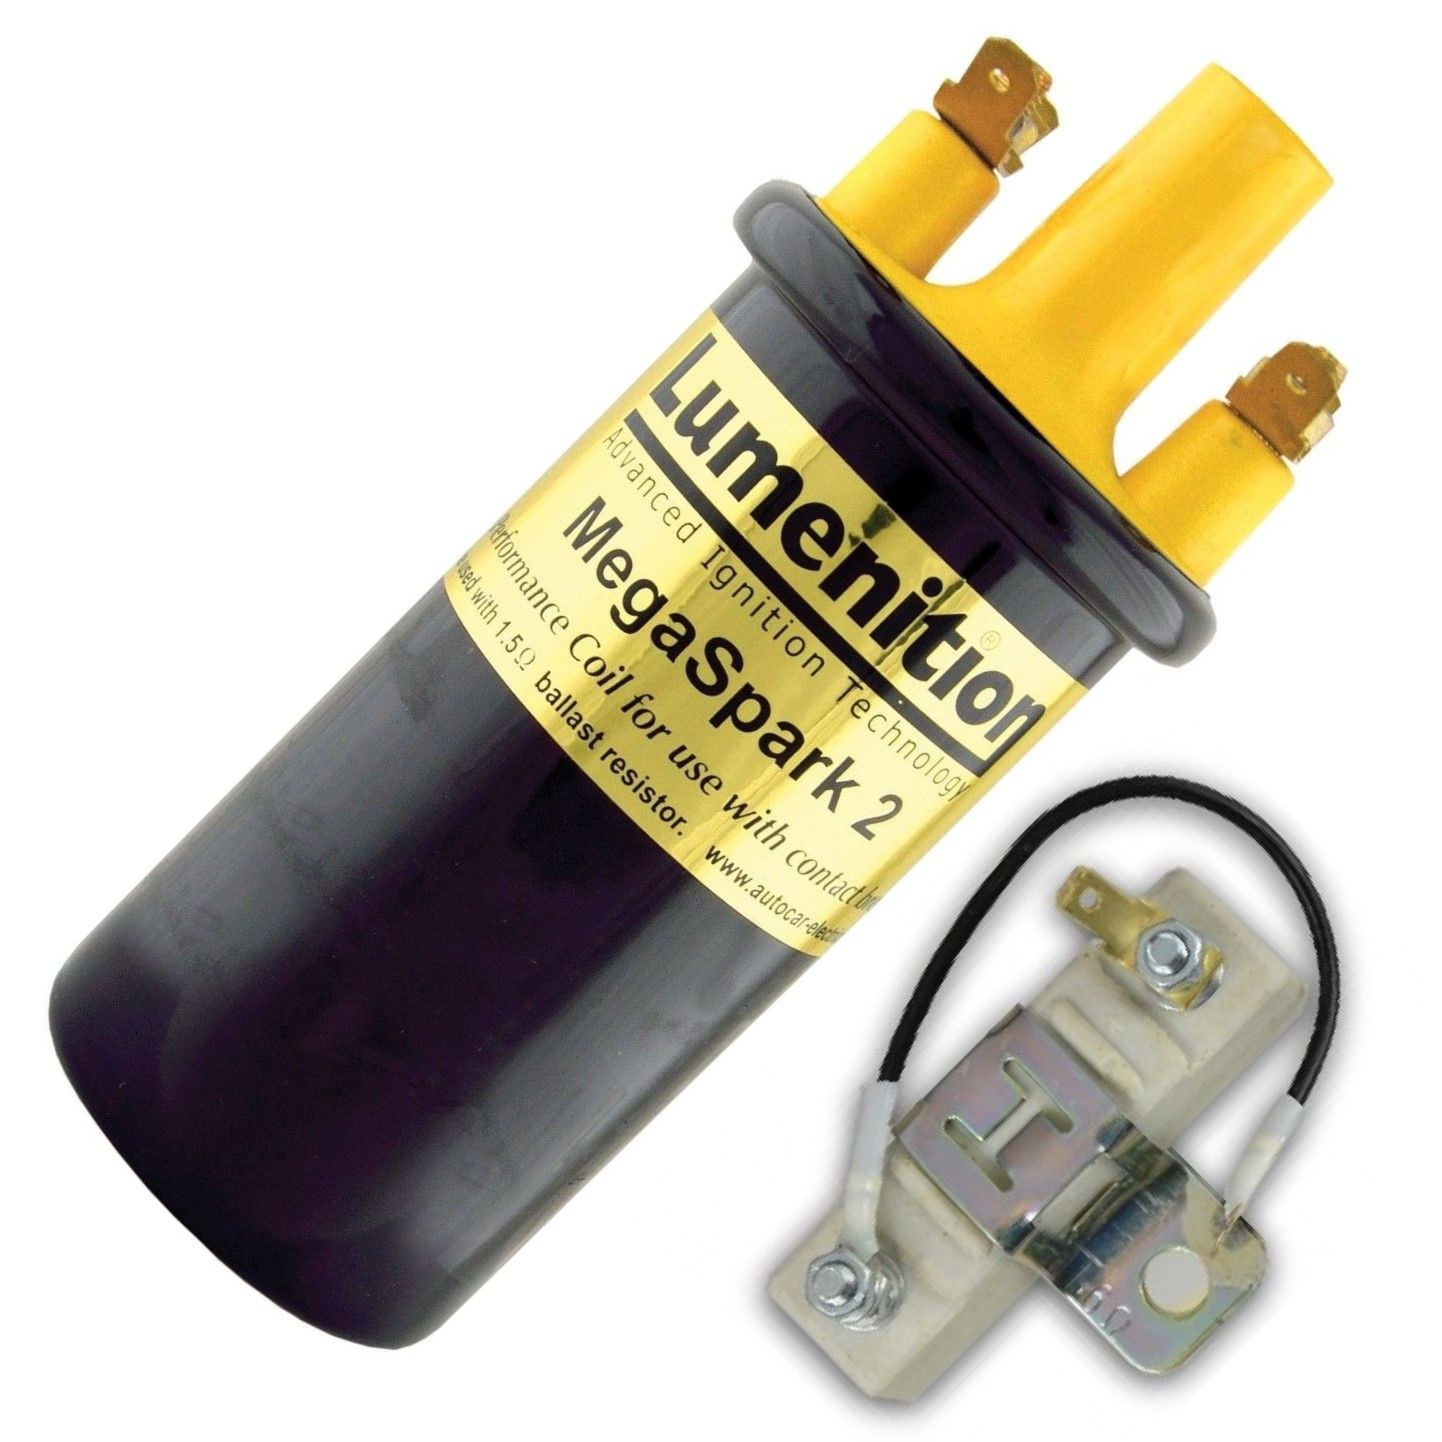 Lumenition Megaspark 2 Ignition Coil With Ballast Resistor | Advanced  Automotive